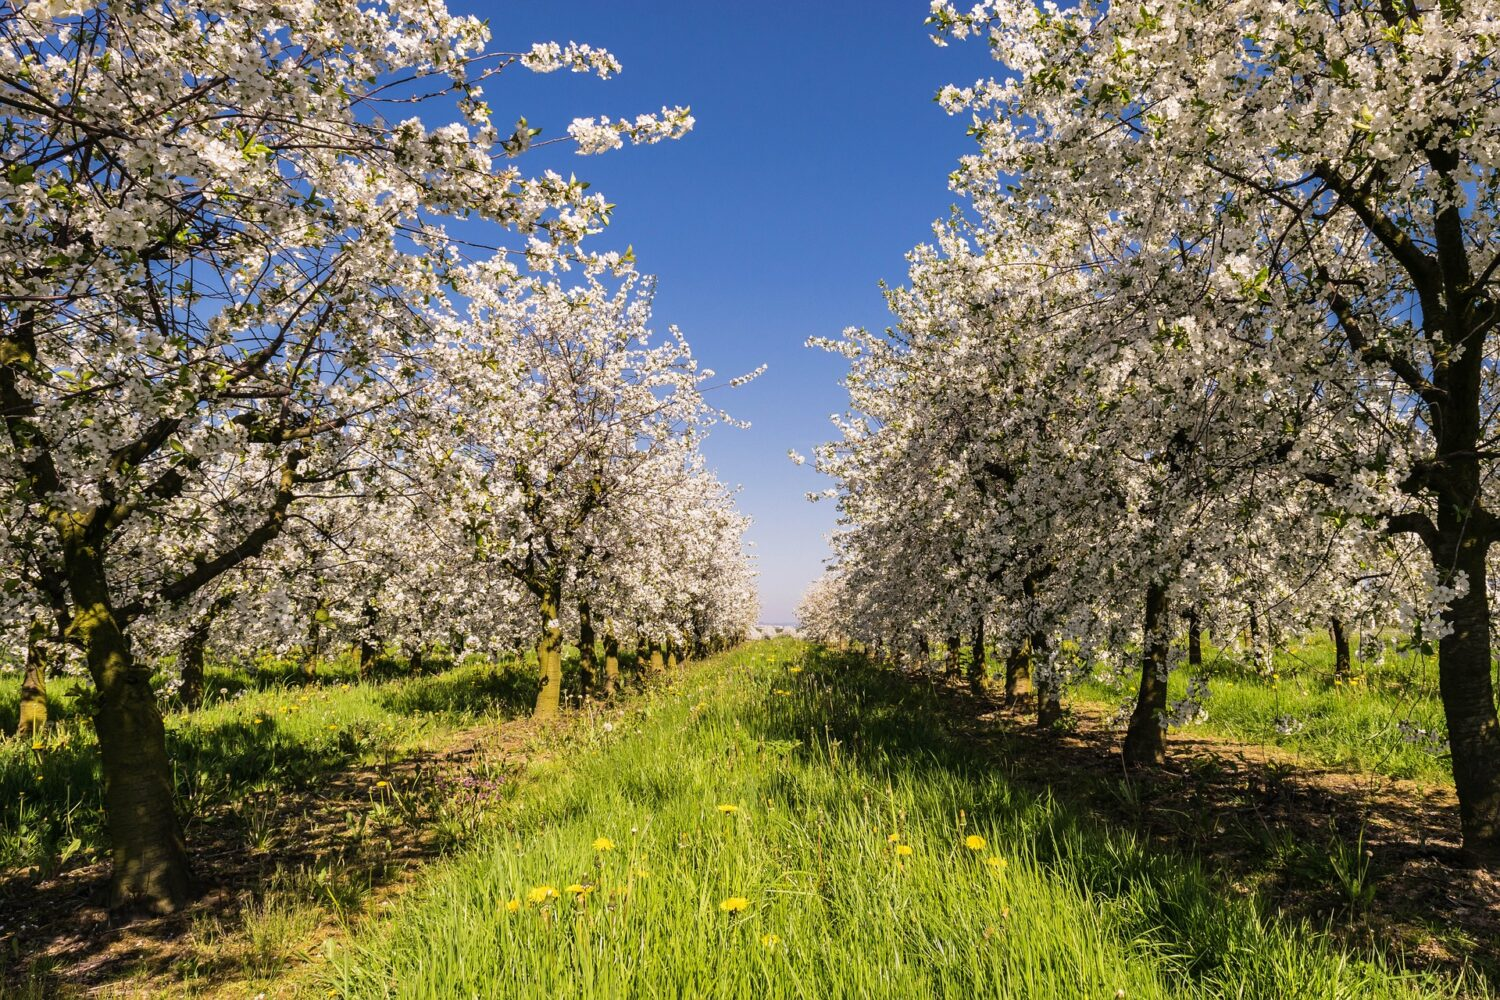 Apple trees in orchard in blossom